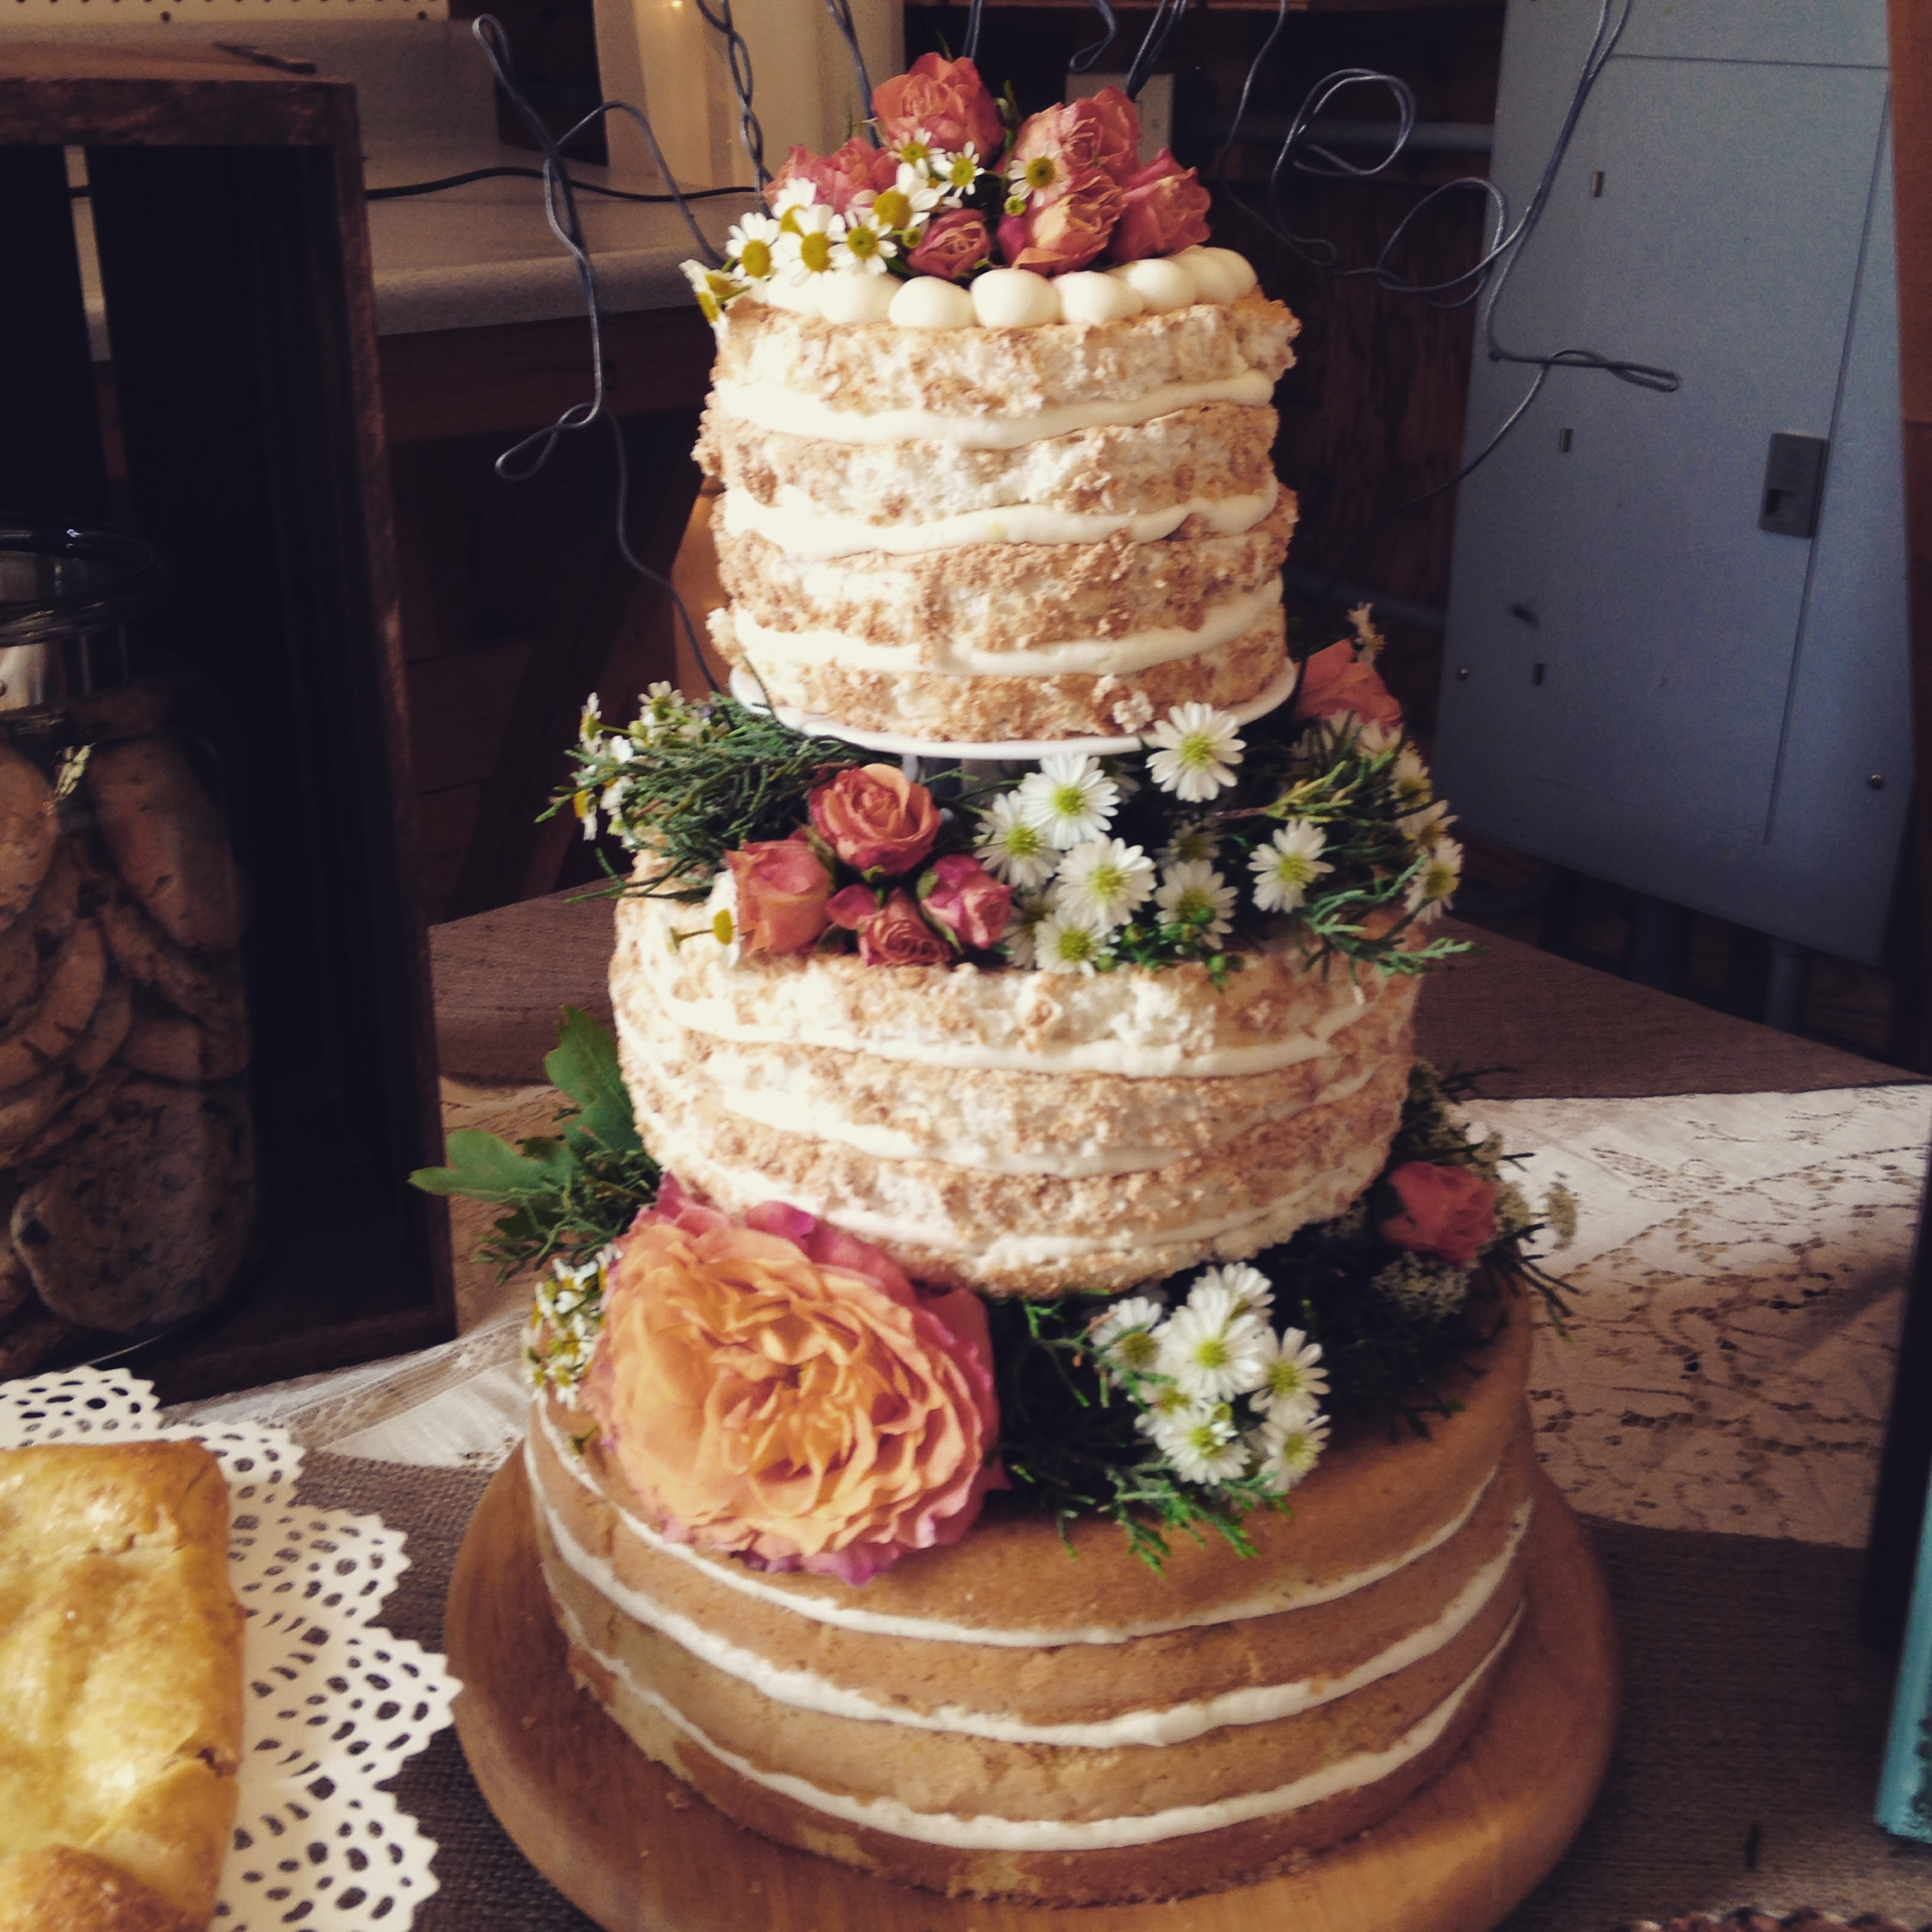 Naked Wedding Cake.JPG